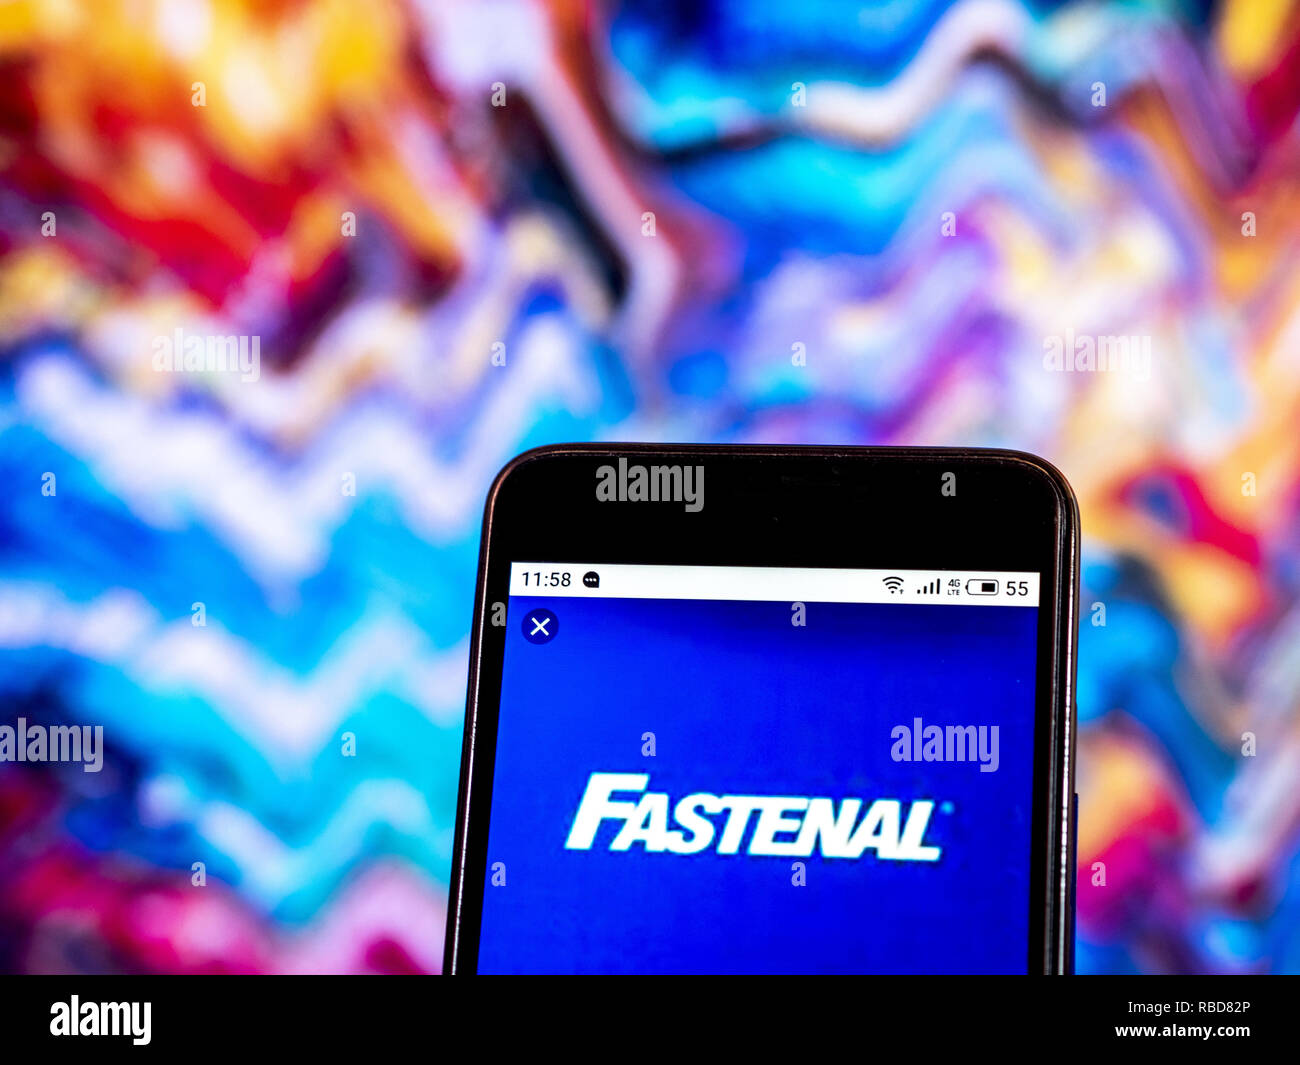 3aed8a44cd66 Fastenal Industrial supplies company logo seen displayed on a smart phone.  Credit: Igor Golovniov/SOPA Images/ZUMA Wire/Alamy Live News